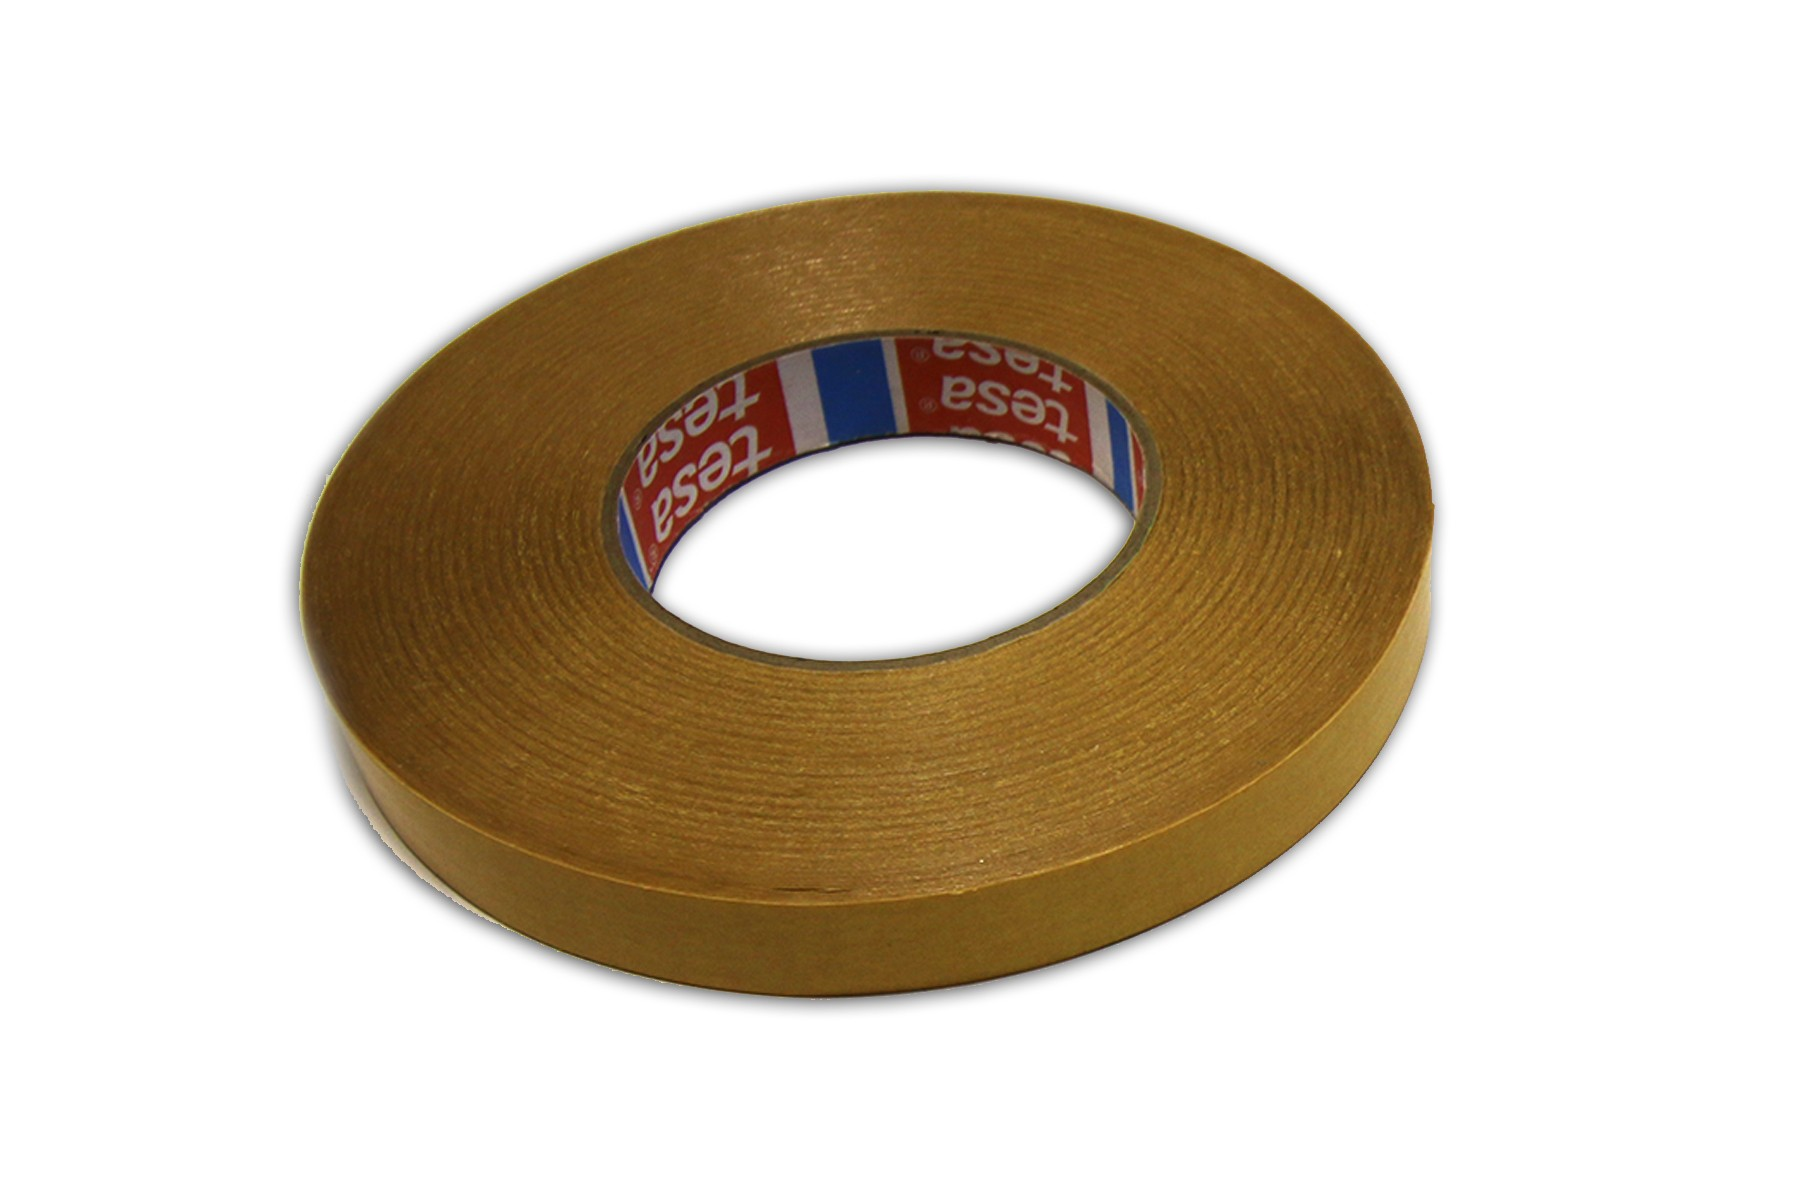 "Tesa Double Sided Application Tape, 3/8"" x 60 yd"